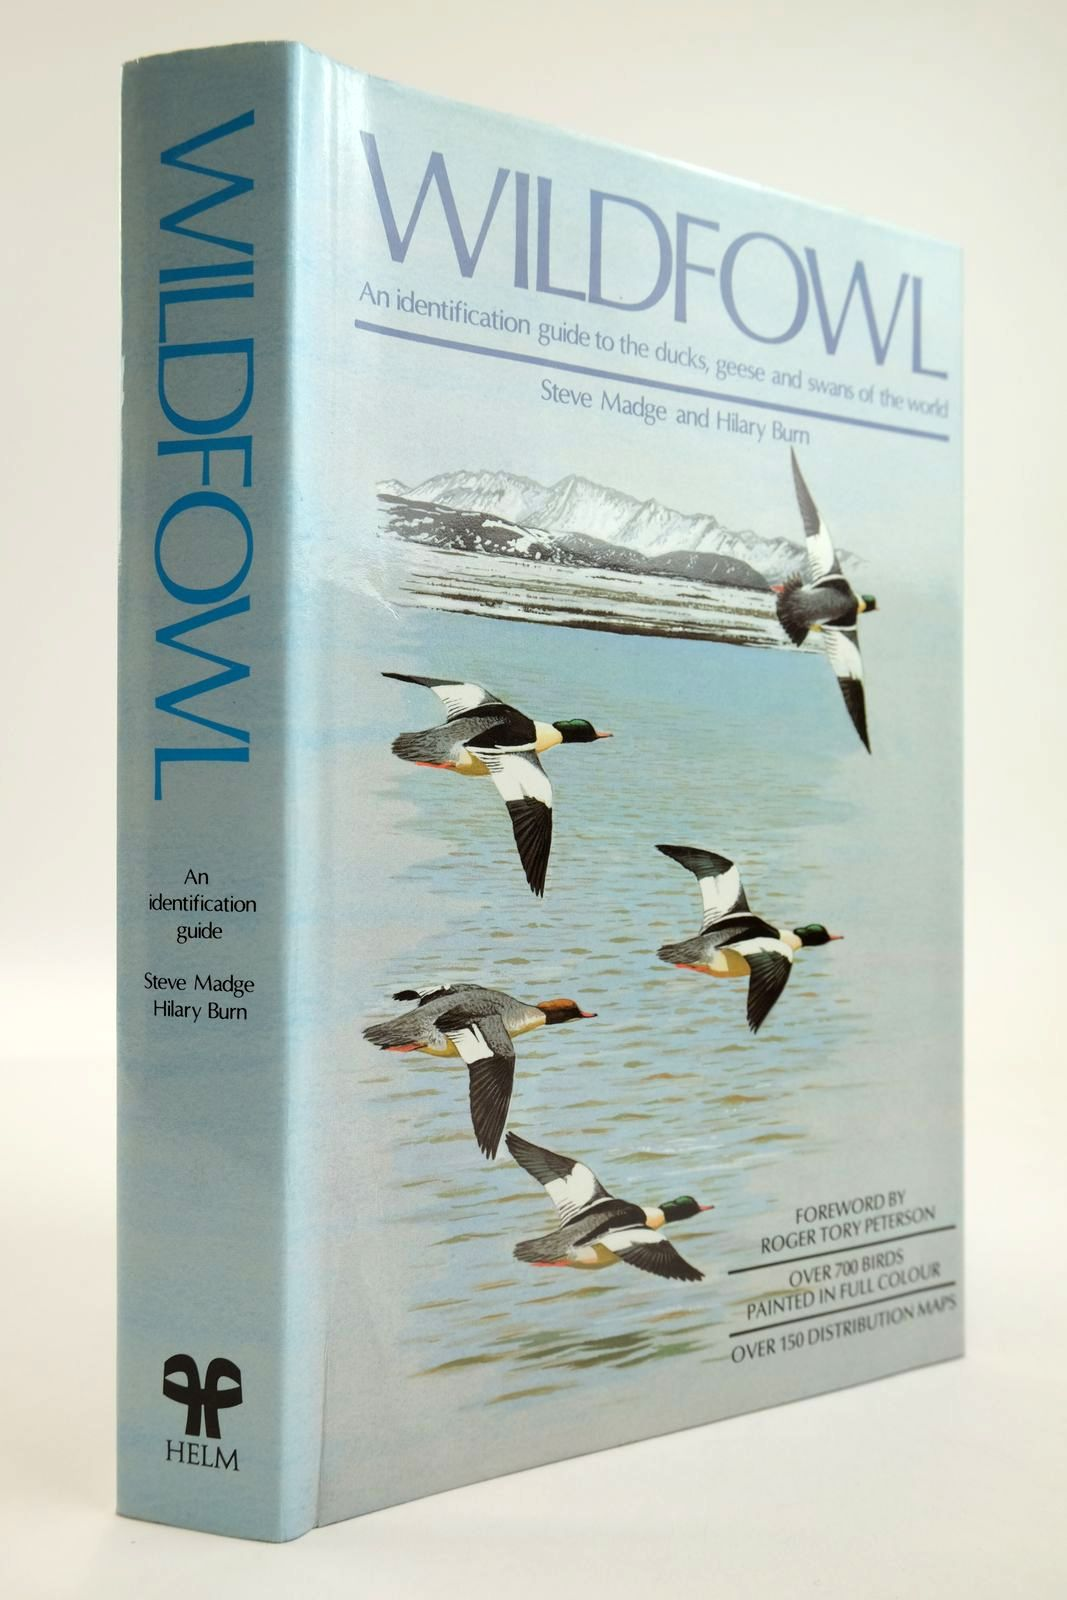 Photo of WILDFOWL: AN IDENTIFICATION GUIDE TO THE DUCKS, GEESE AND SWANS OF THE WORLD- Stock Number: 2133643